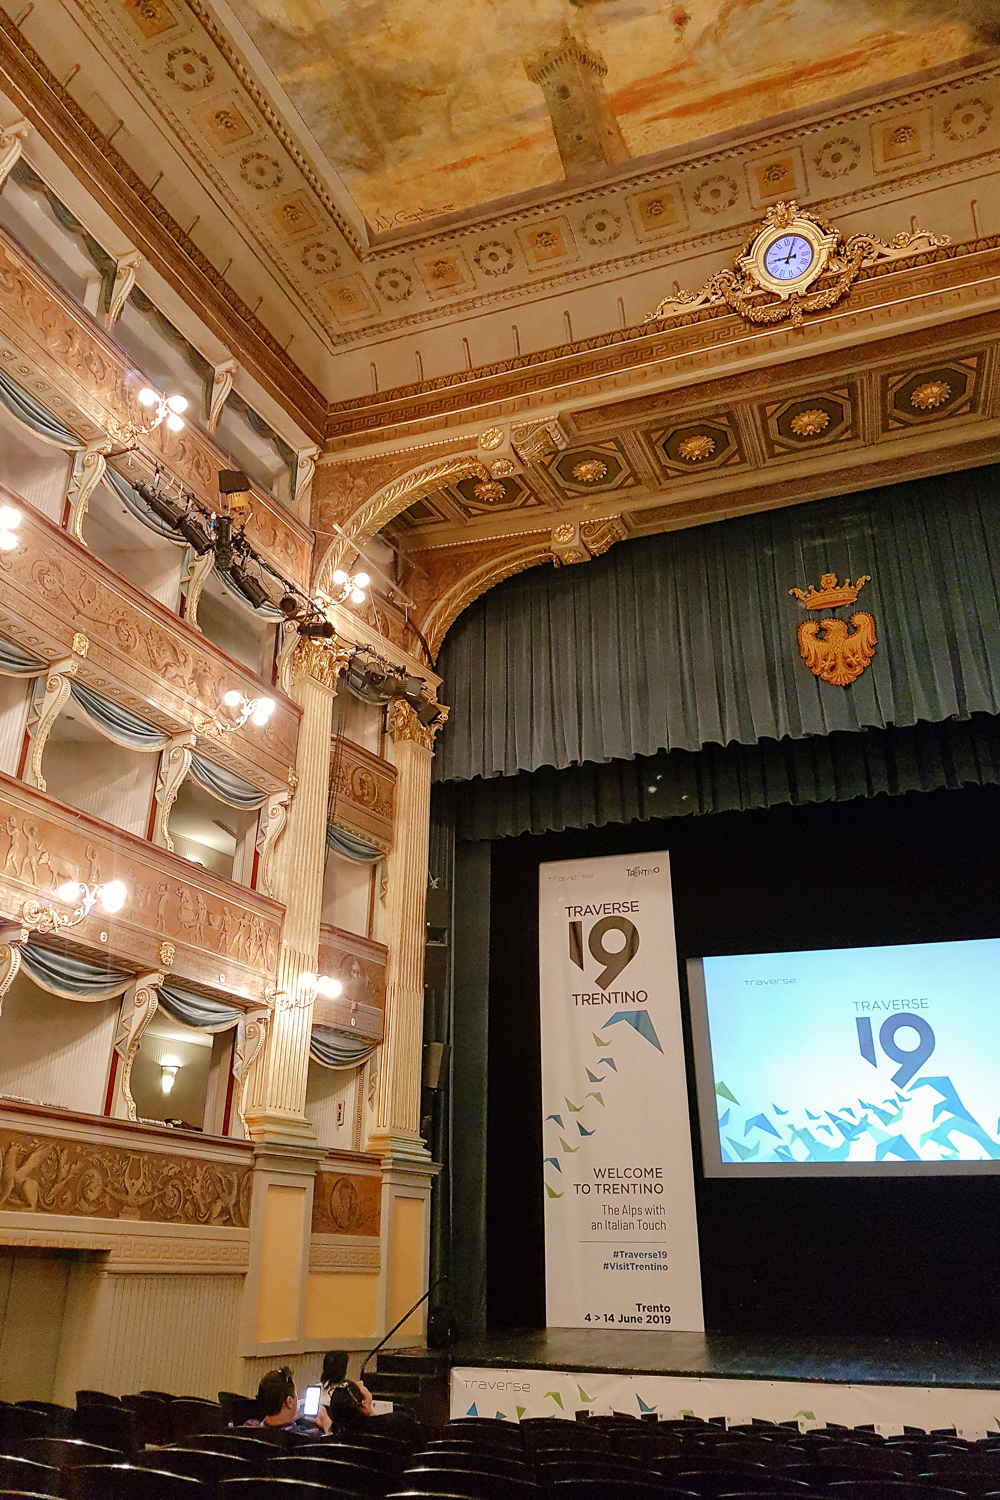 Teatro Sociale in Trento, Italy for Traverse 19